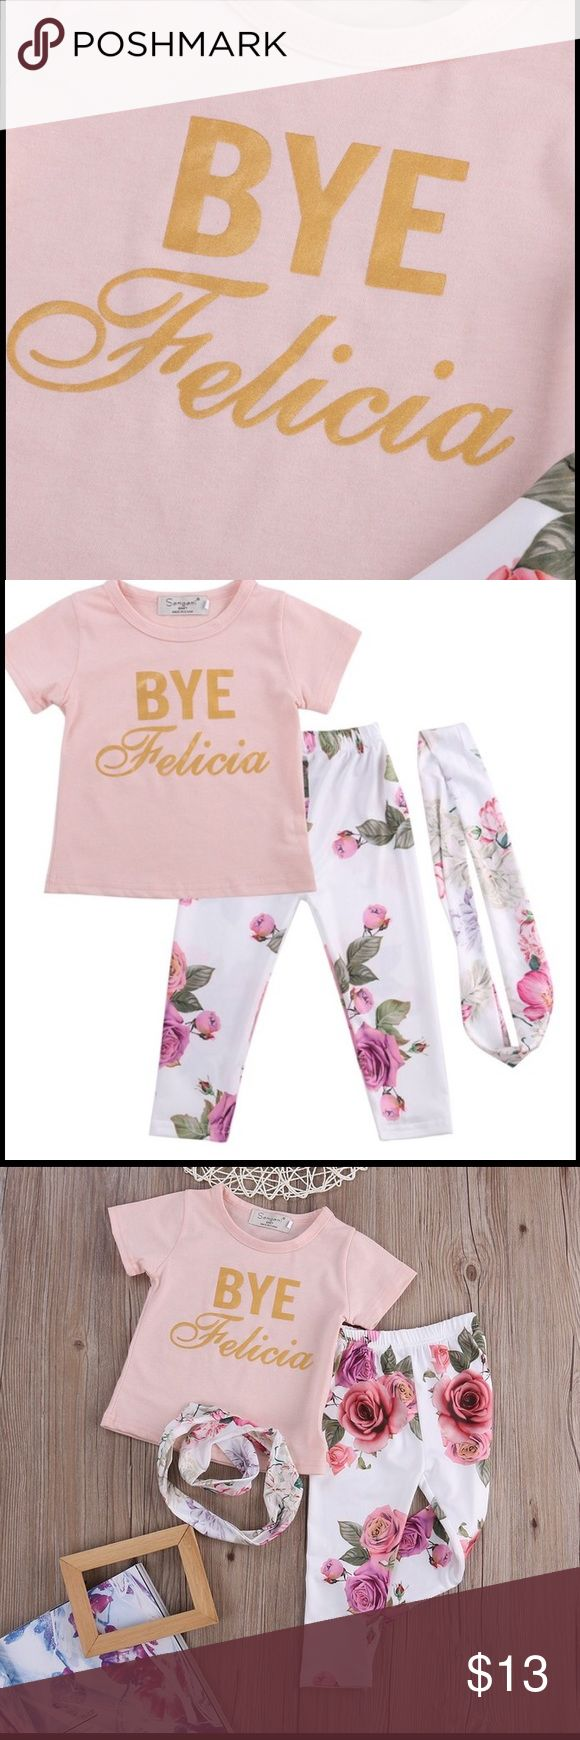 BYE FELICIA 3 PIECE OUTFIT New 3 Piece Outfit. Size 1 1/2 to 2 Years. Matching Sets